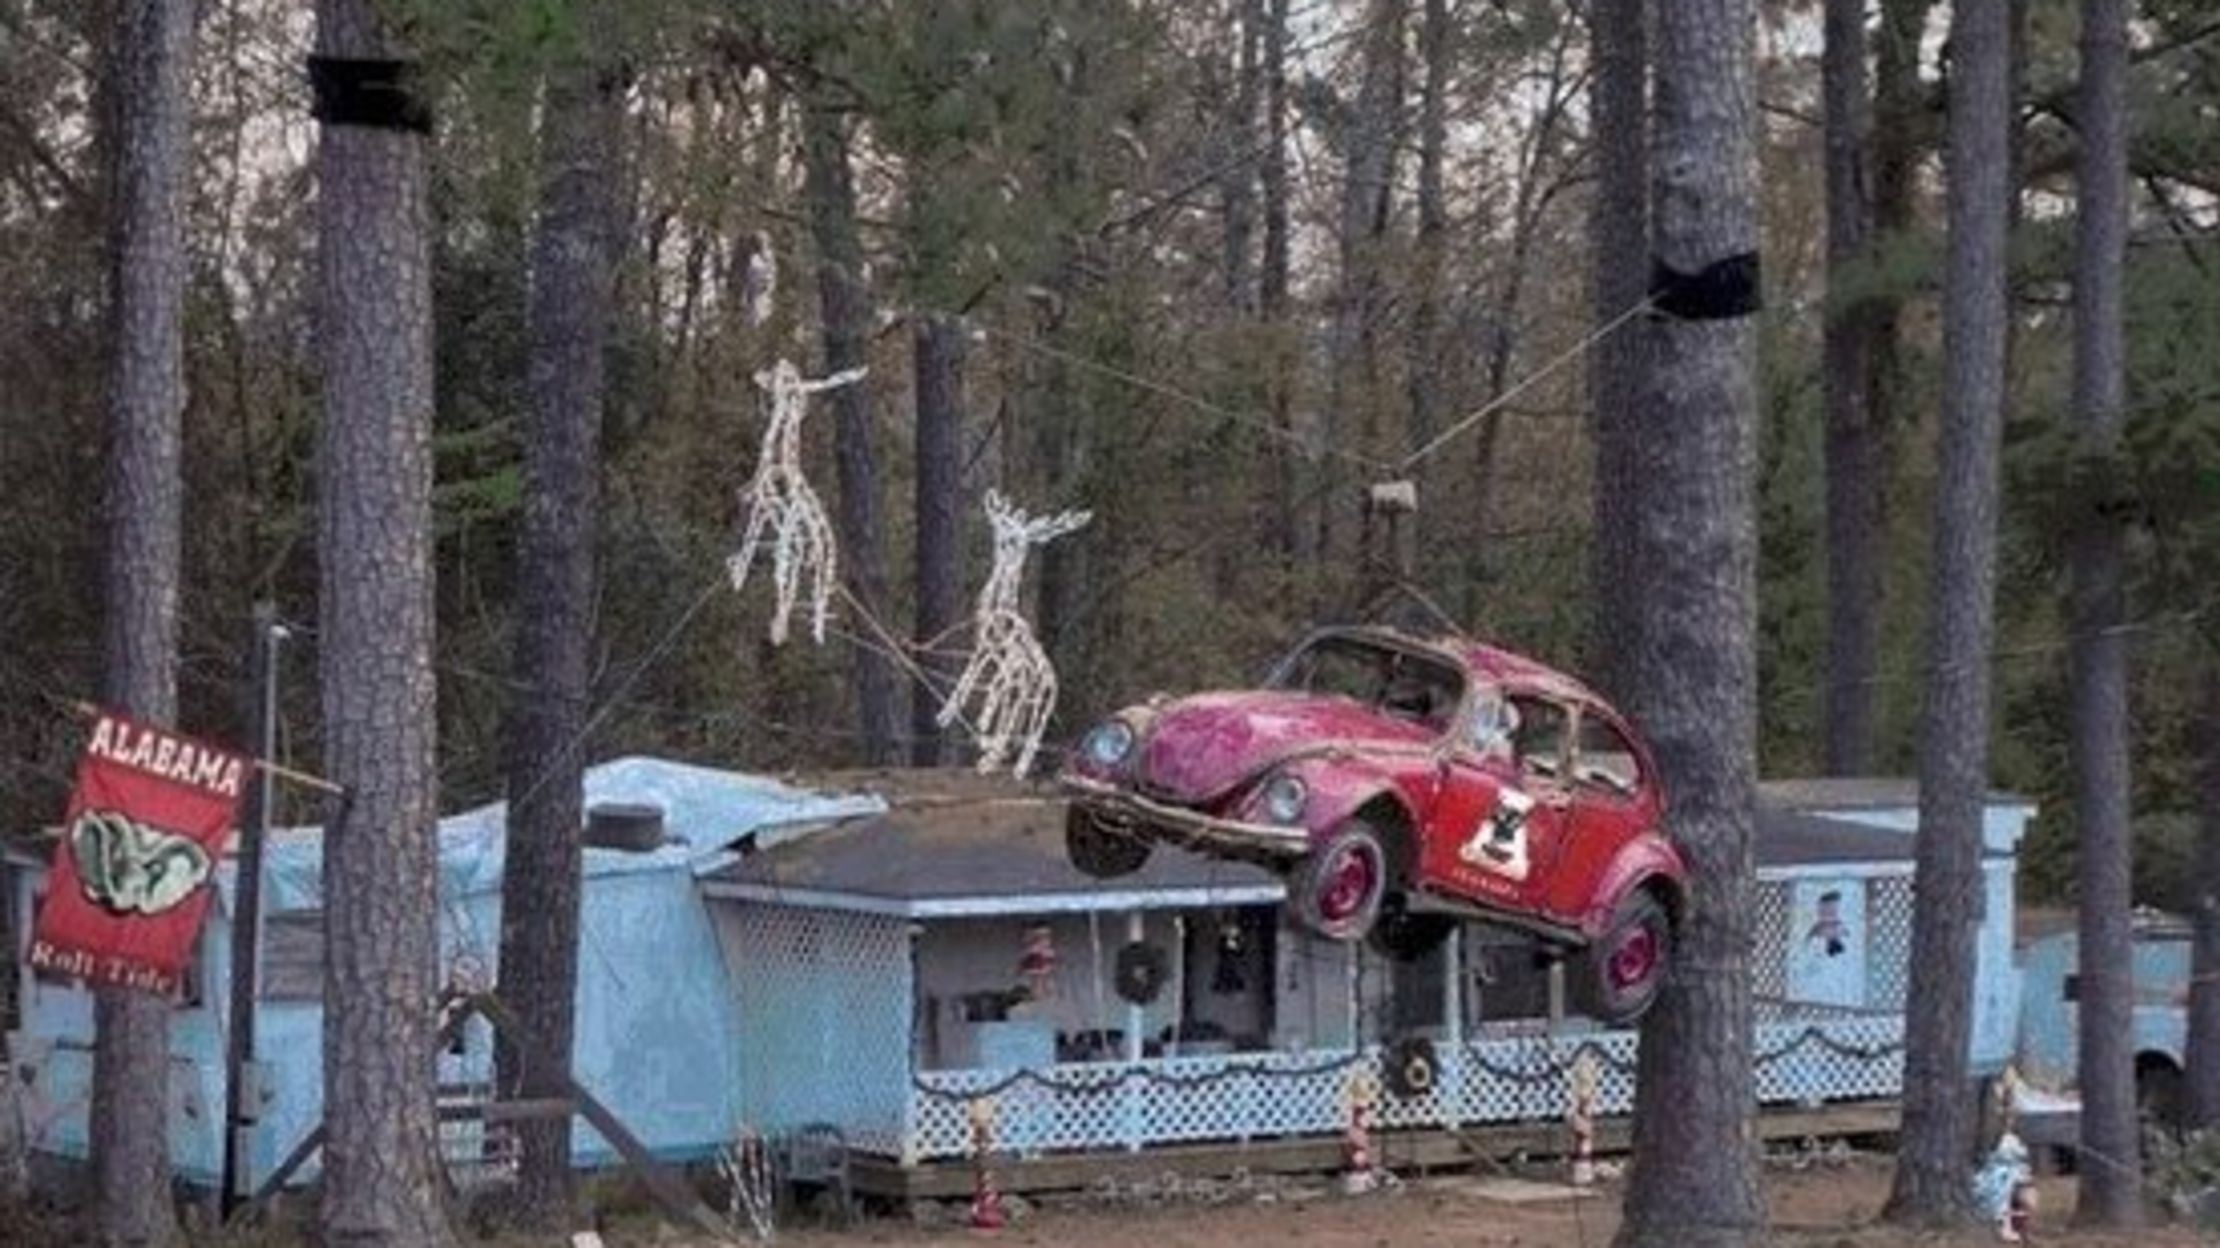 Bizarre But Clever Christmas Decorations Mental Floss